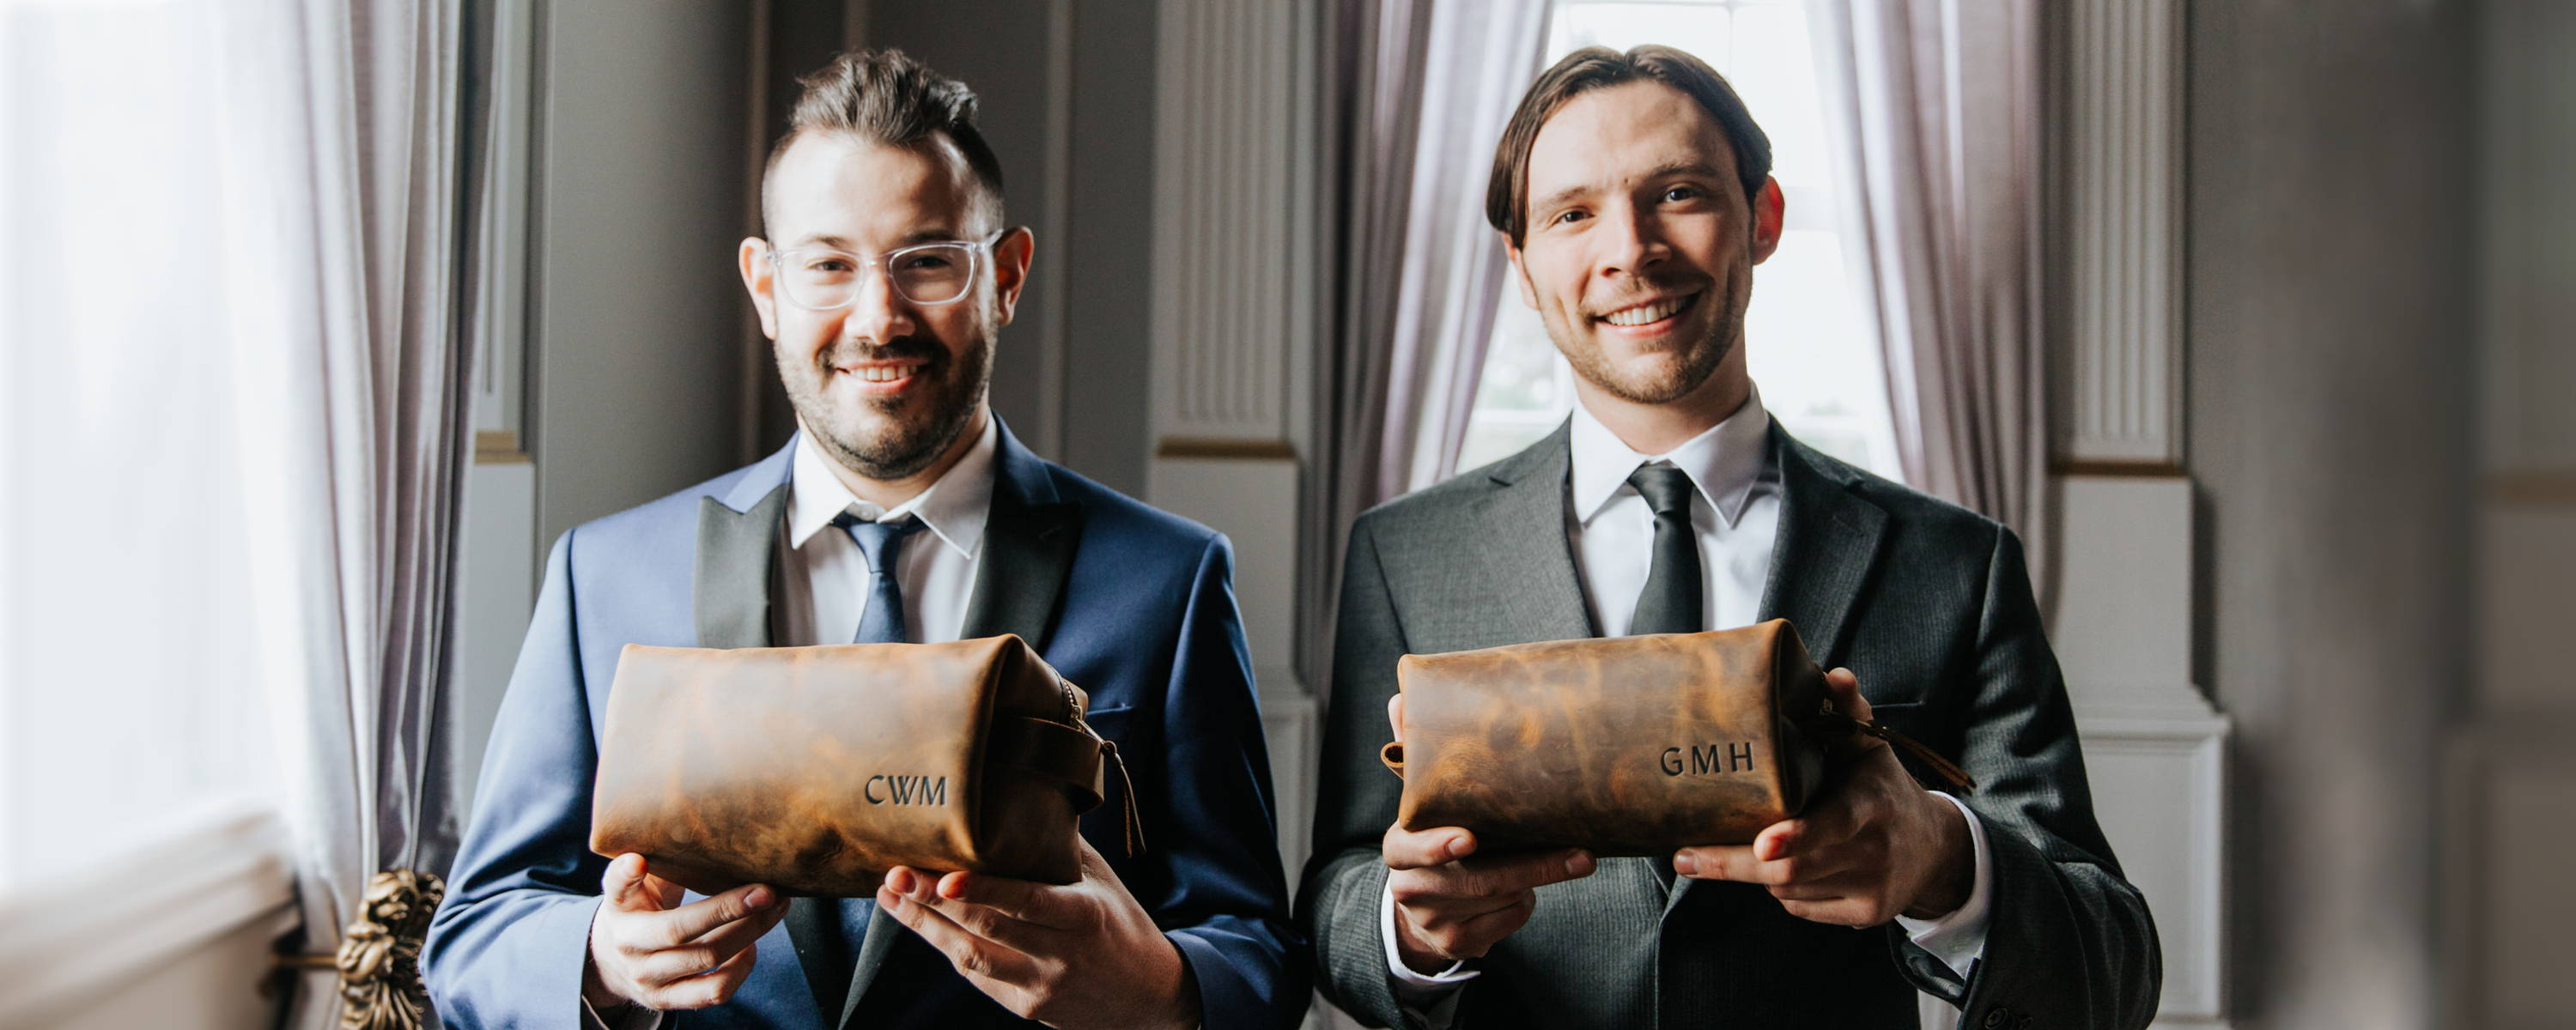 a groom and groomsman holding personalized handmade leather dopp kits made by portland leather goods